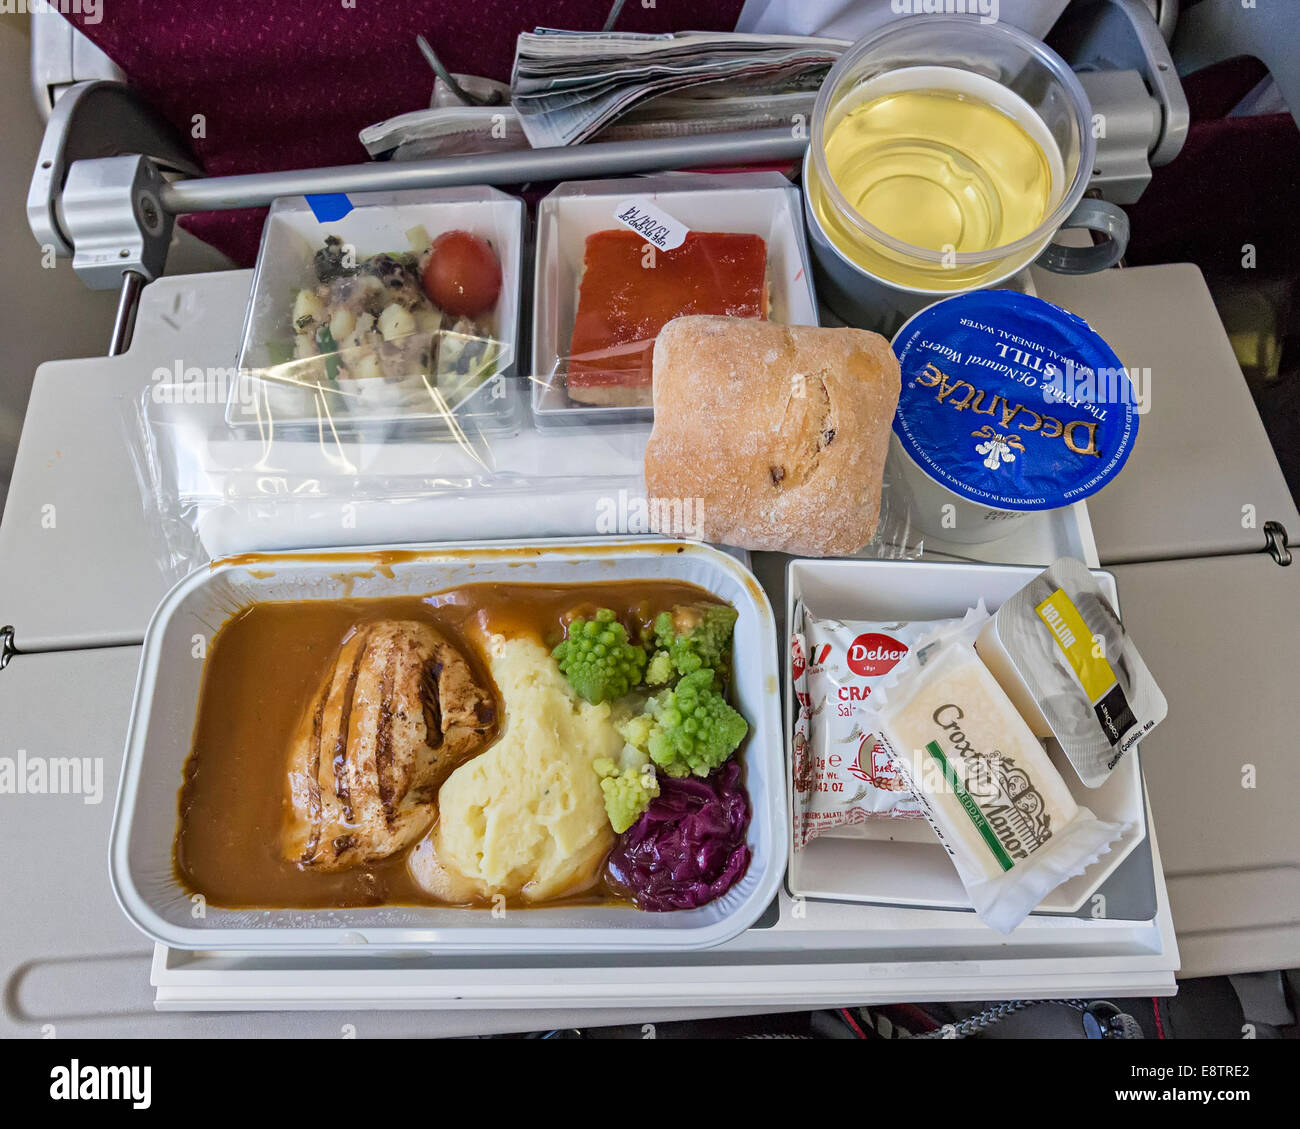 Airline food with Malaysian Airlines, Borneo - Stock Image